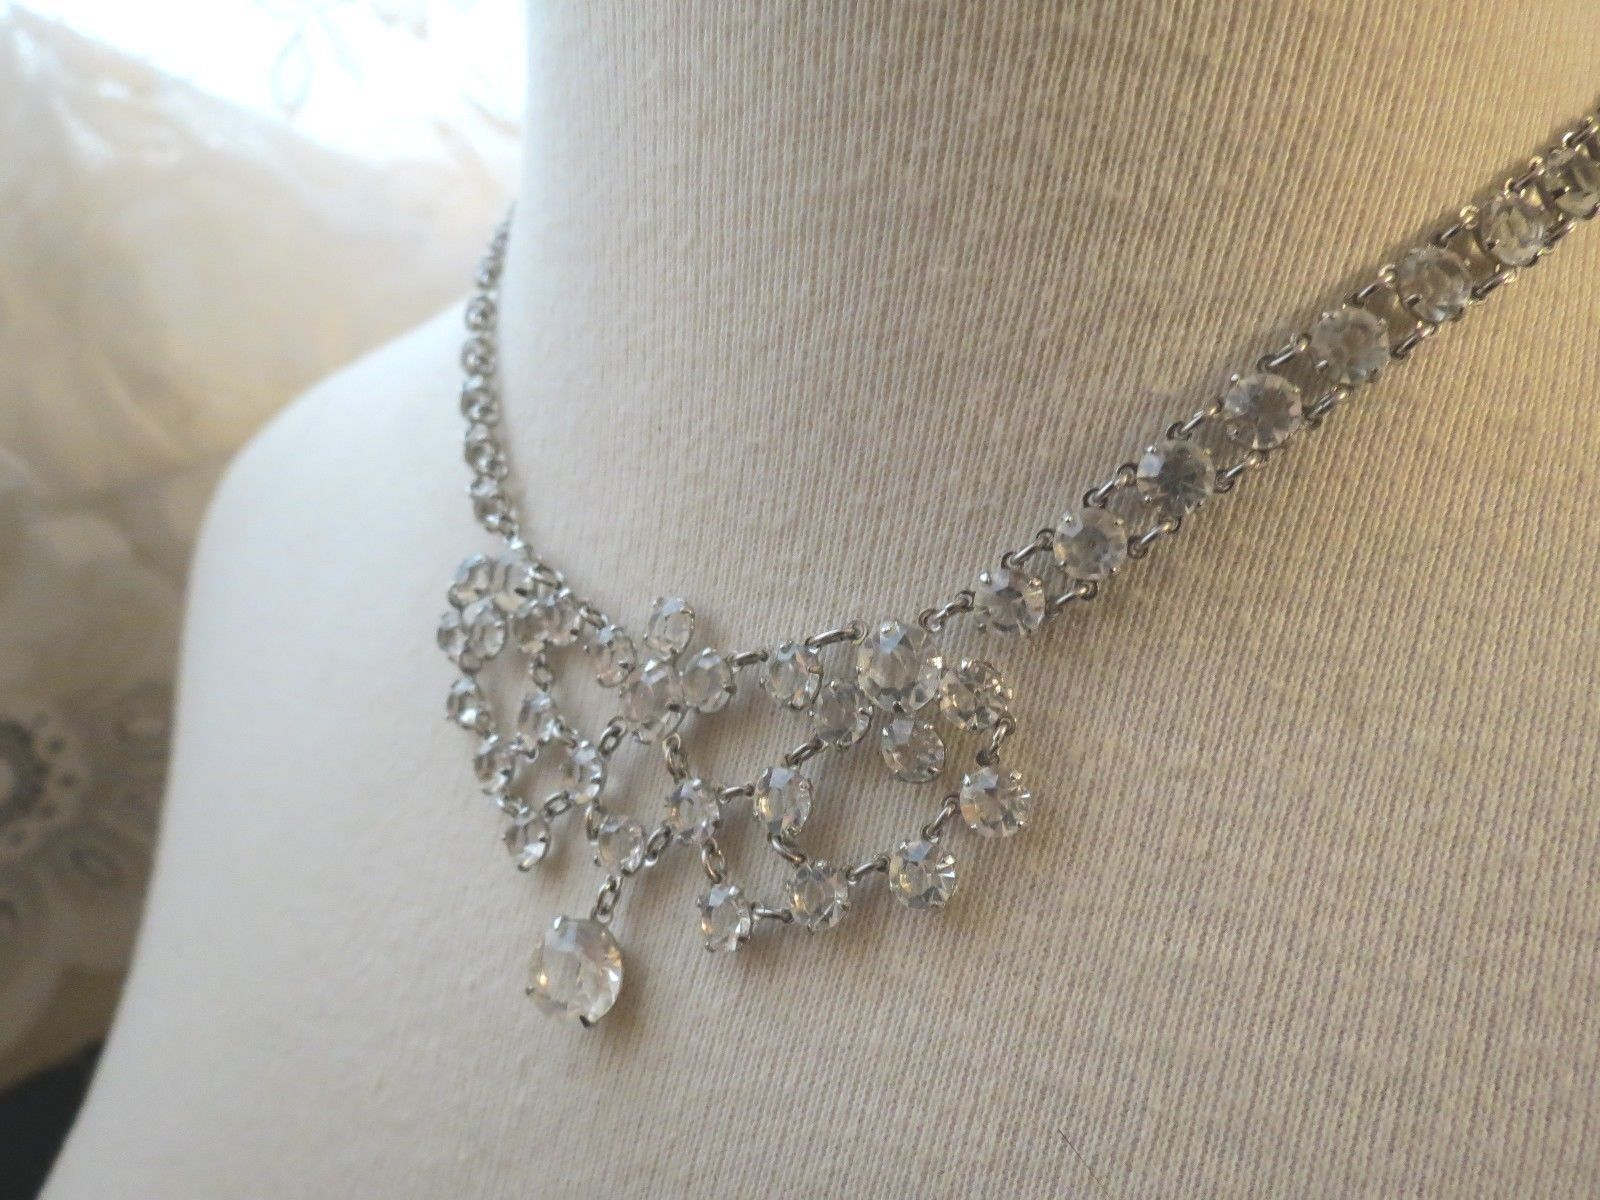 VTG Bezel Set Clear Crystal Necklace Choker Mini Bib Silver Plated Dangle Fringe image 2